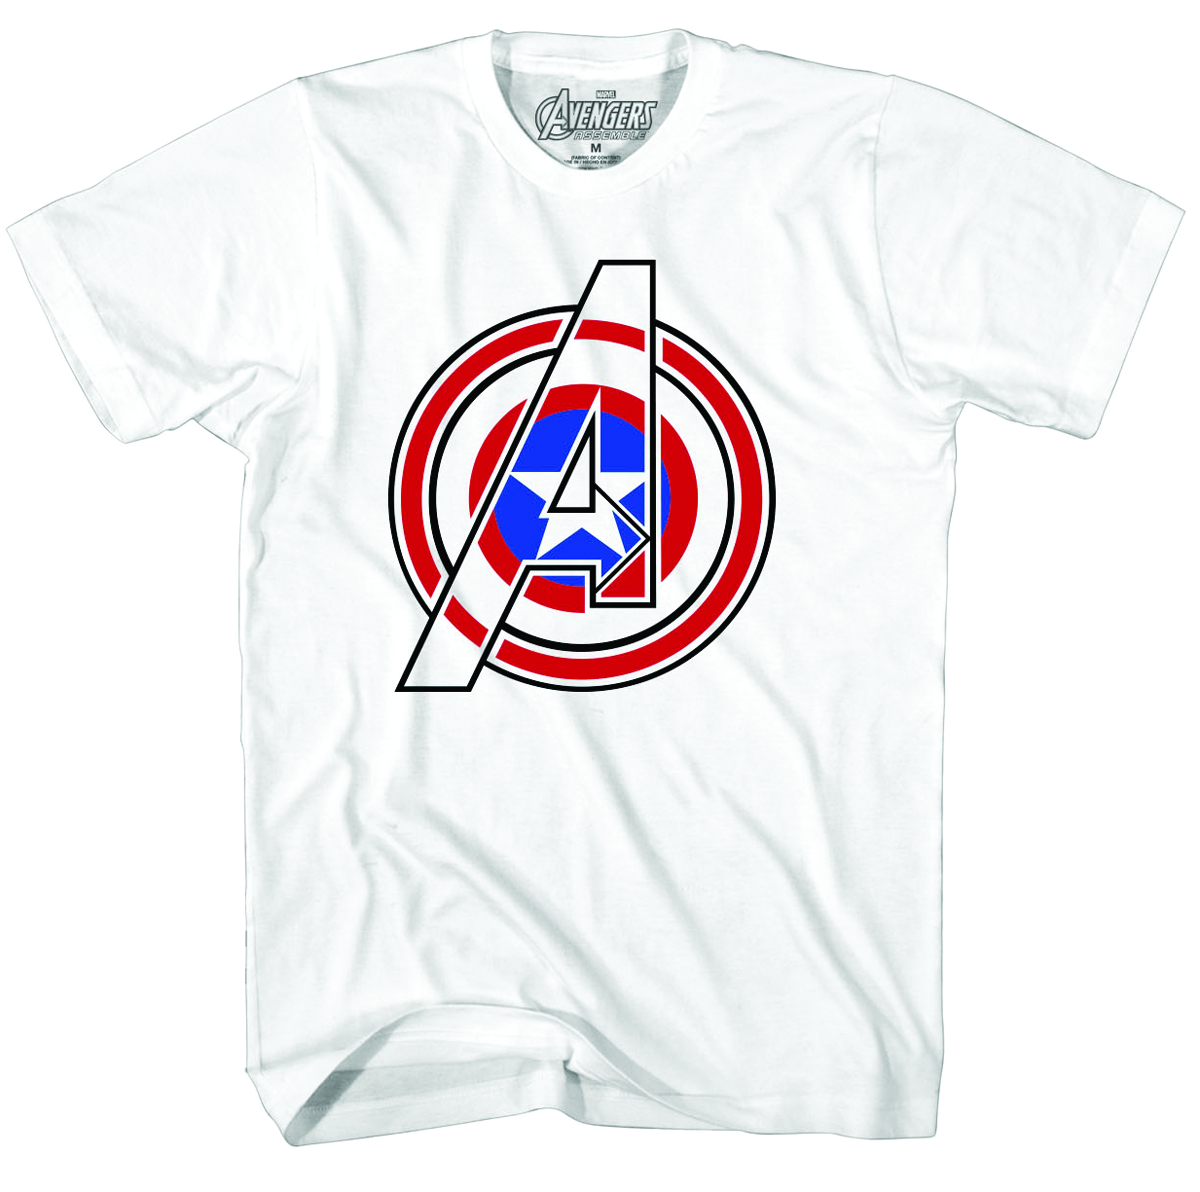 CAPTAIN AMERICA COMBINED ICONS PX WHT T/S SM